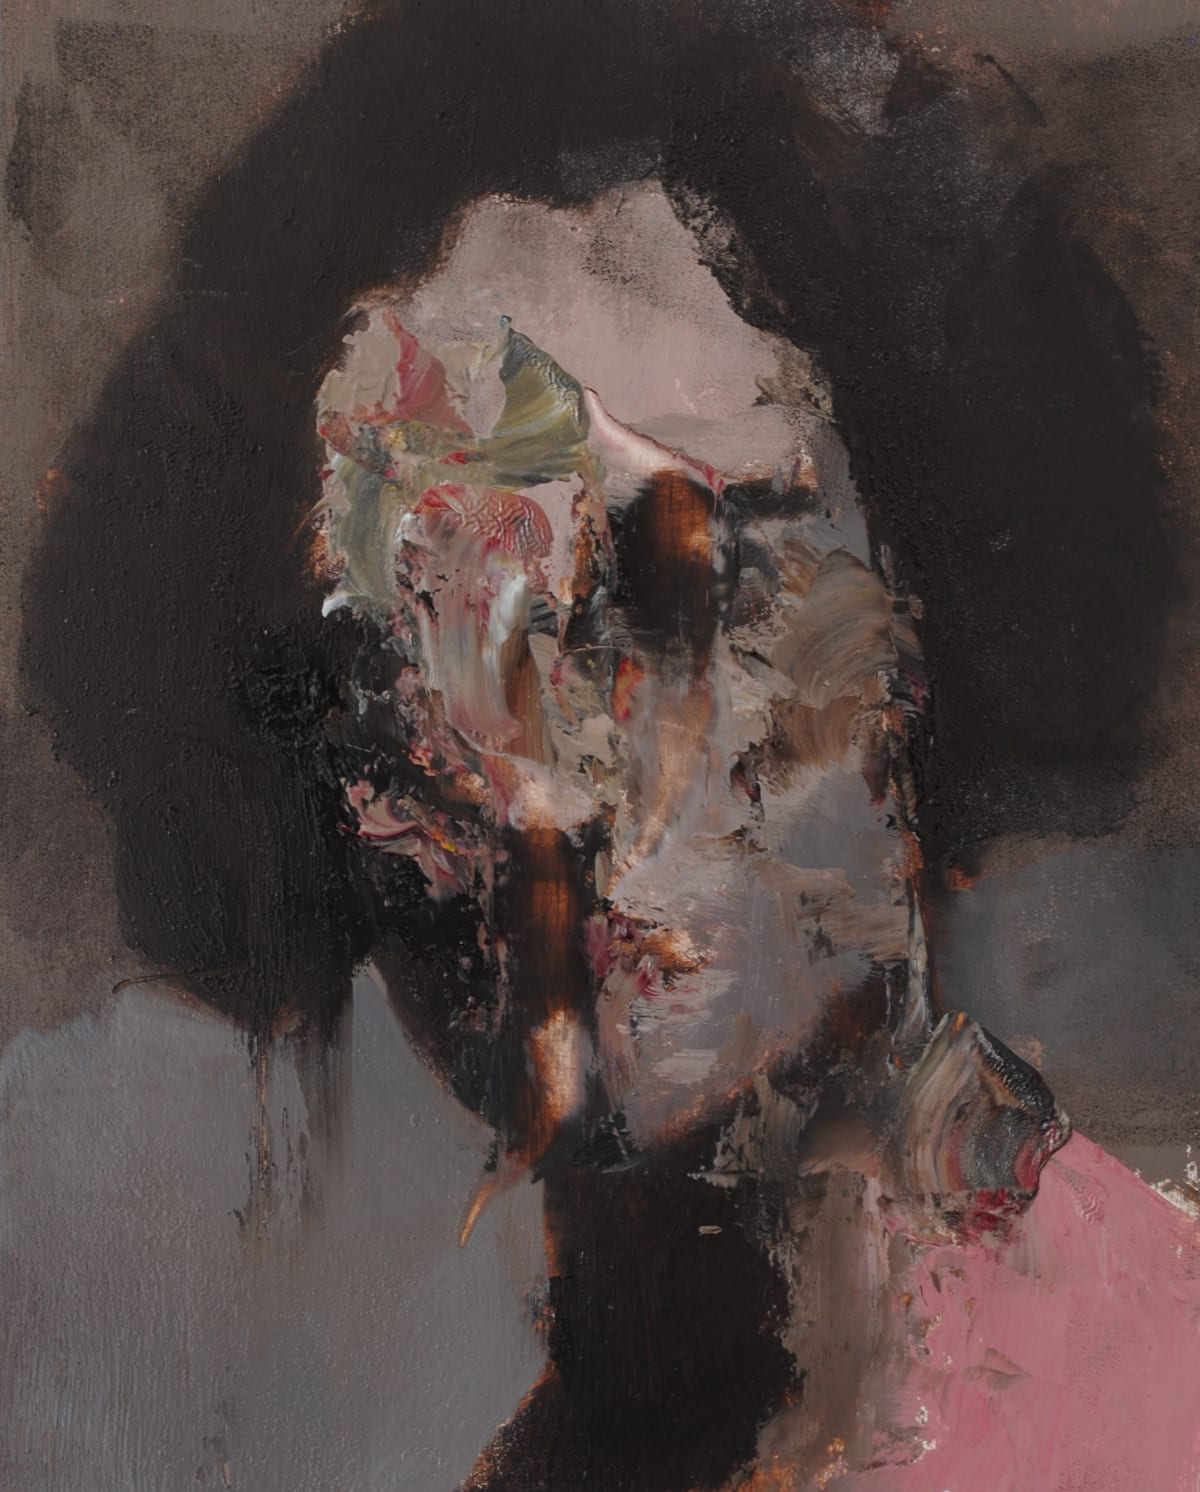 Jean-Luc Almond, Untitled Face, 2018